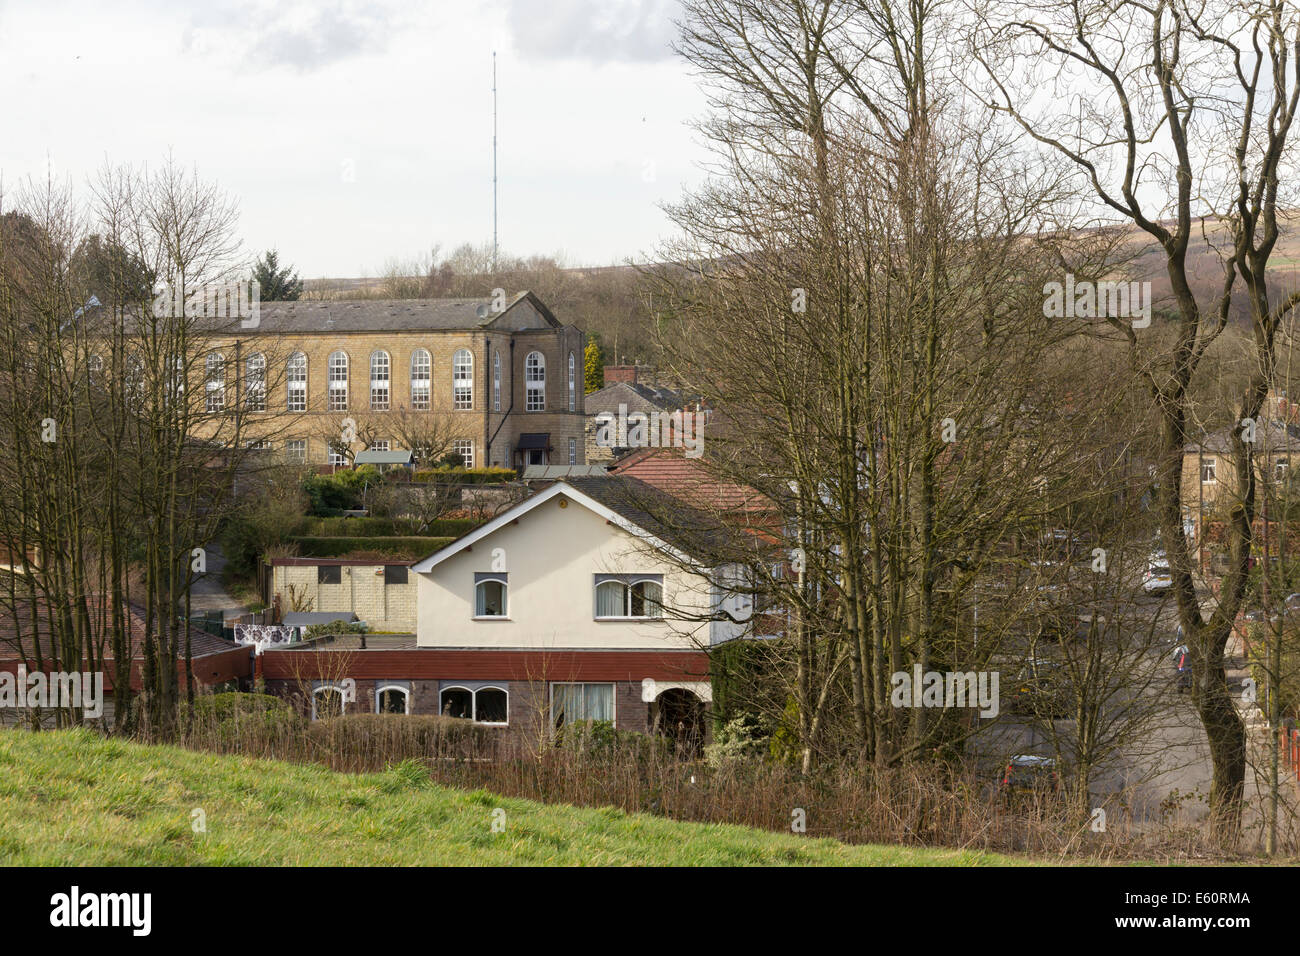 The former 19th century Barrow Bridge Institute (now apartment flats), lies beyond 20th century housing  in north - Stock Image